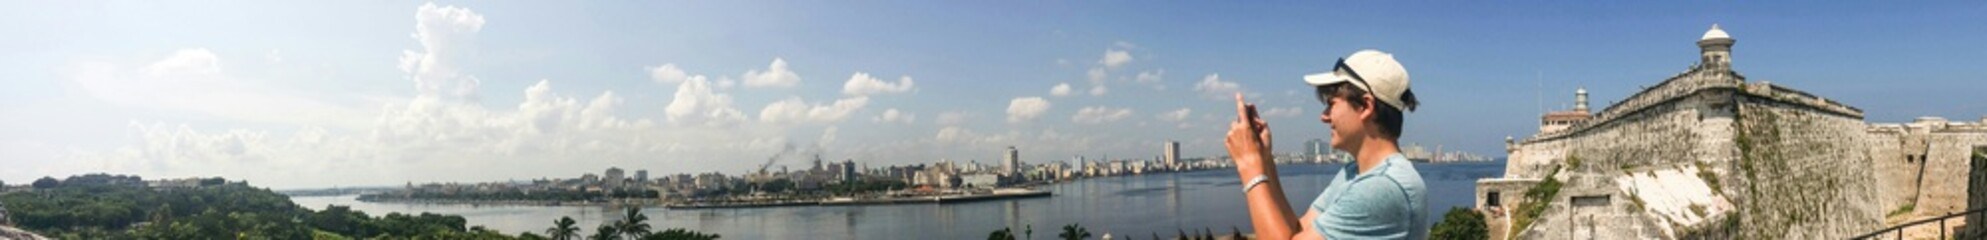 Young man taking picture of Havana from Fort La Cabana